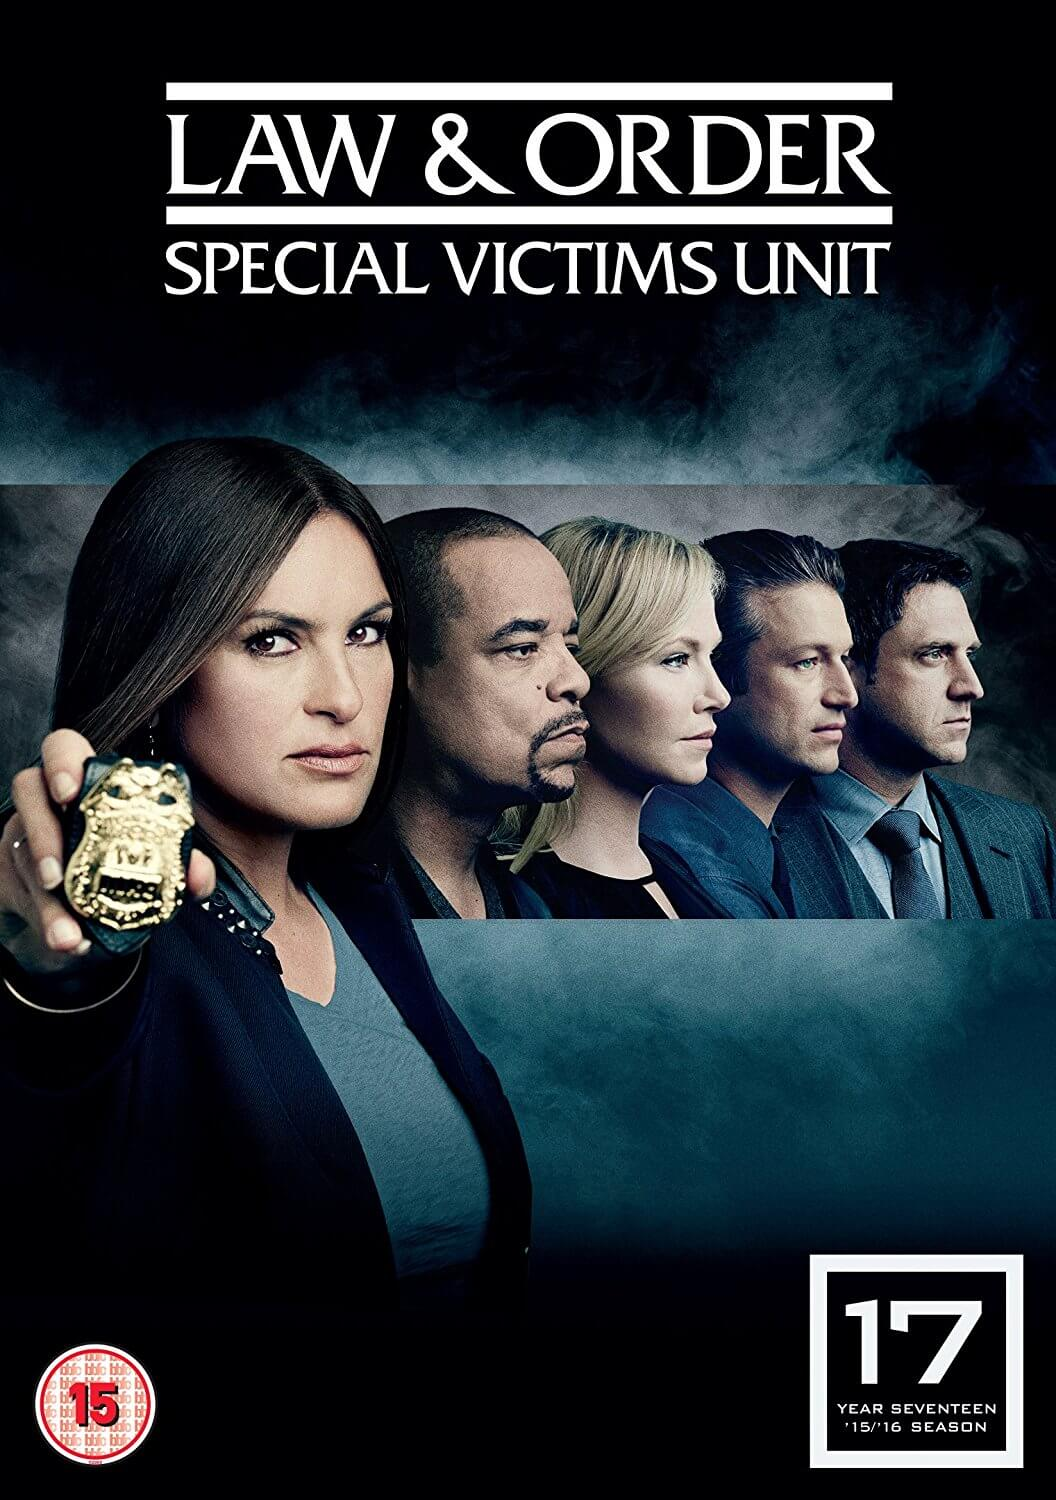 Law And Order - Special Victims Unit - Season 17